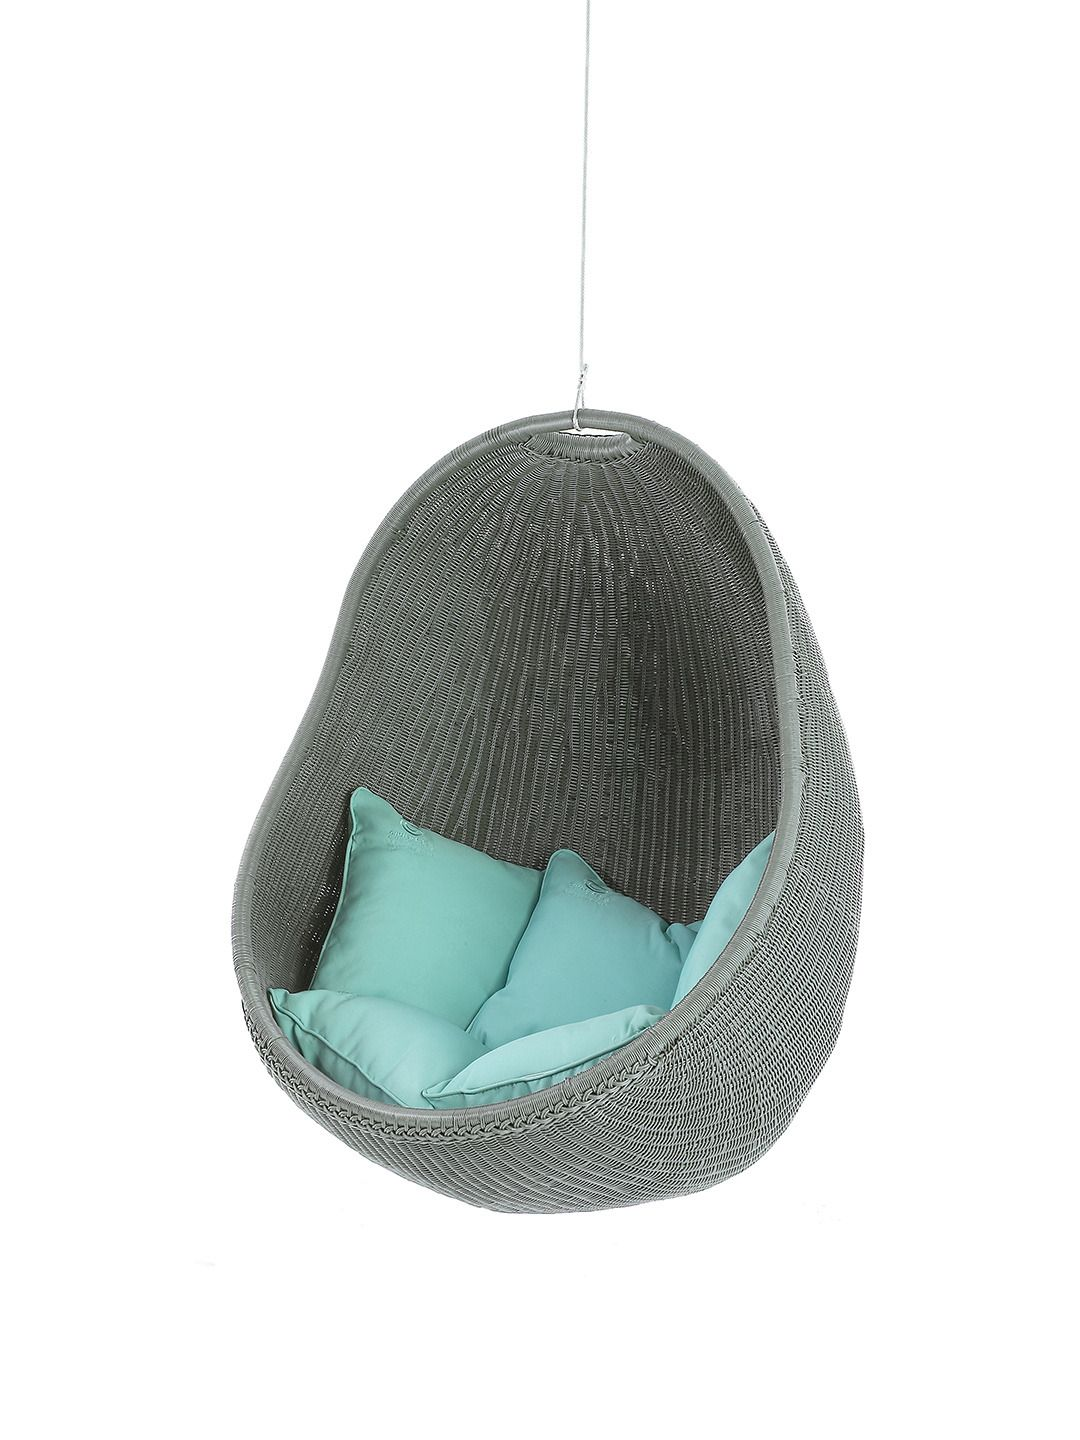 Cove hanging chair by outback company at gilt cove hanging chair